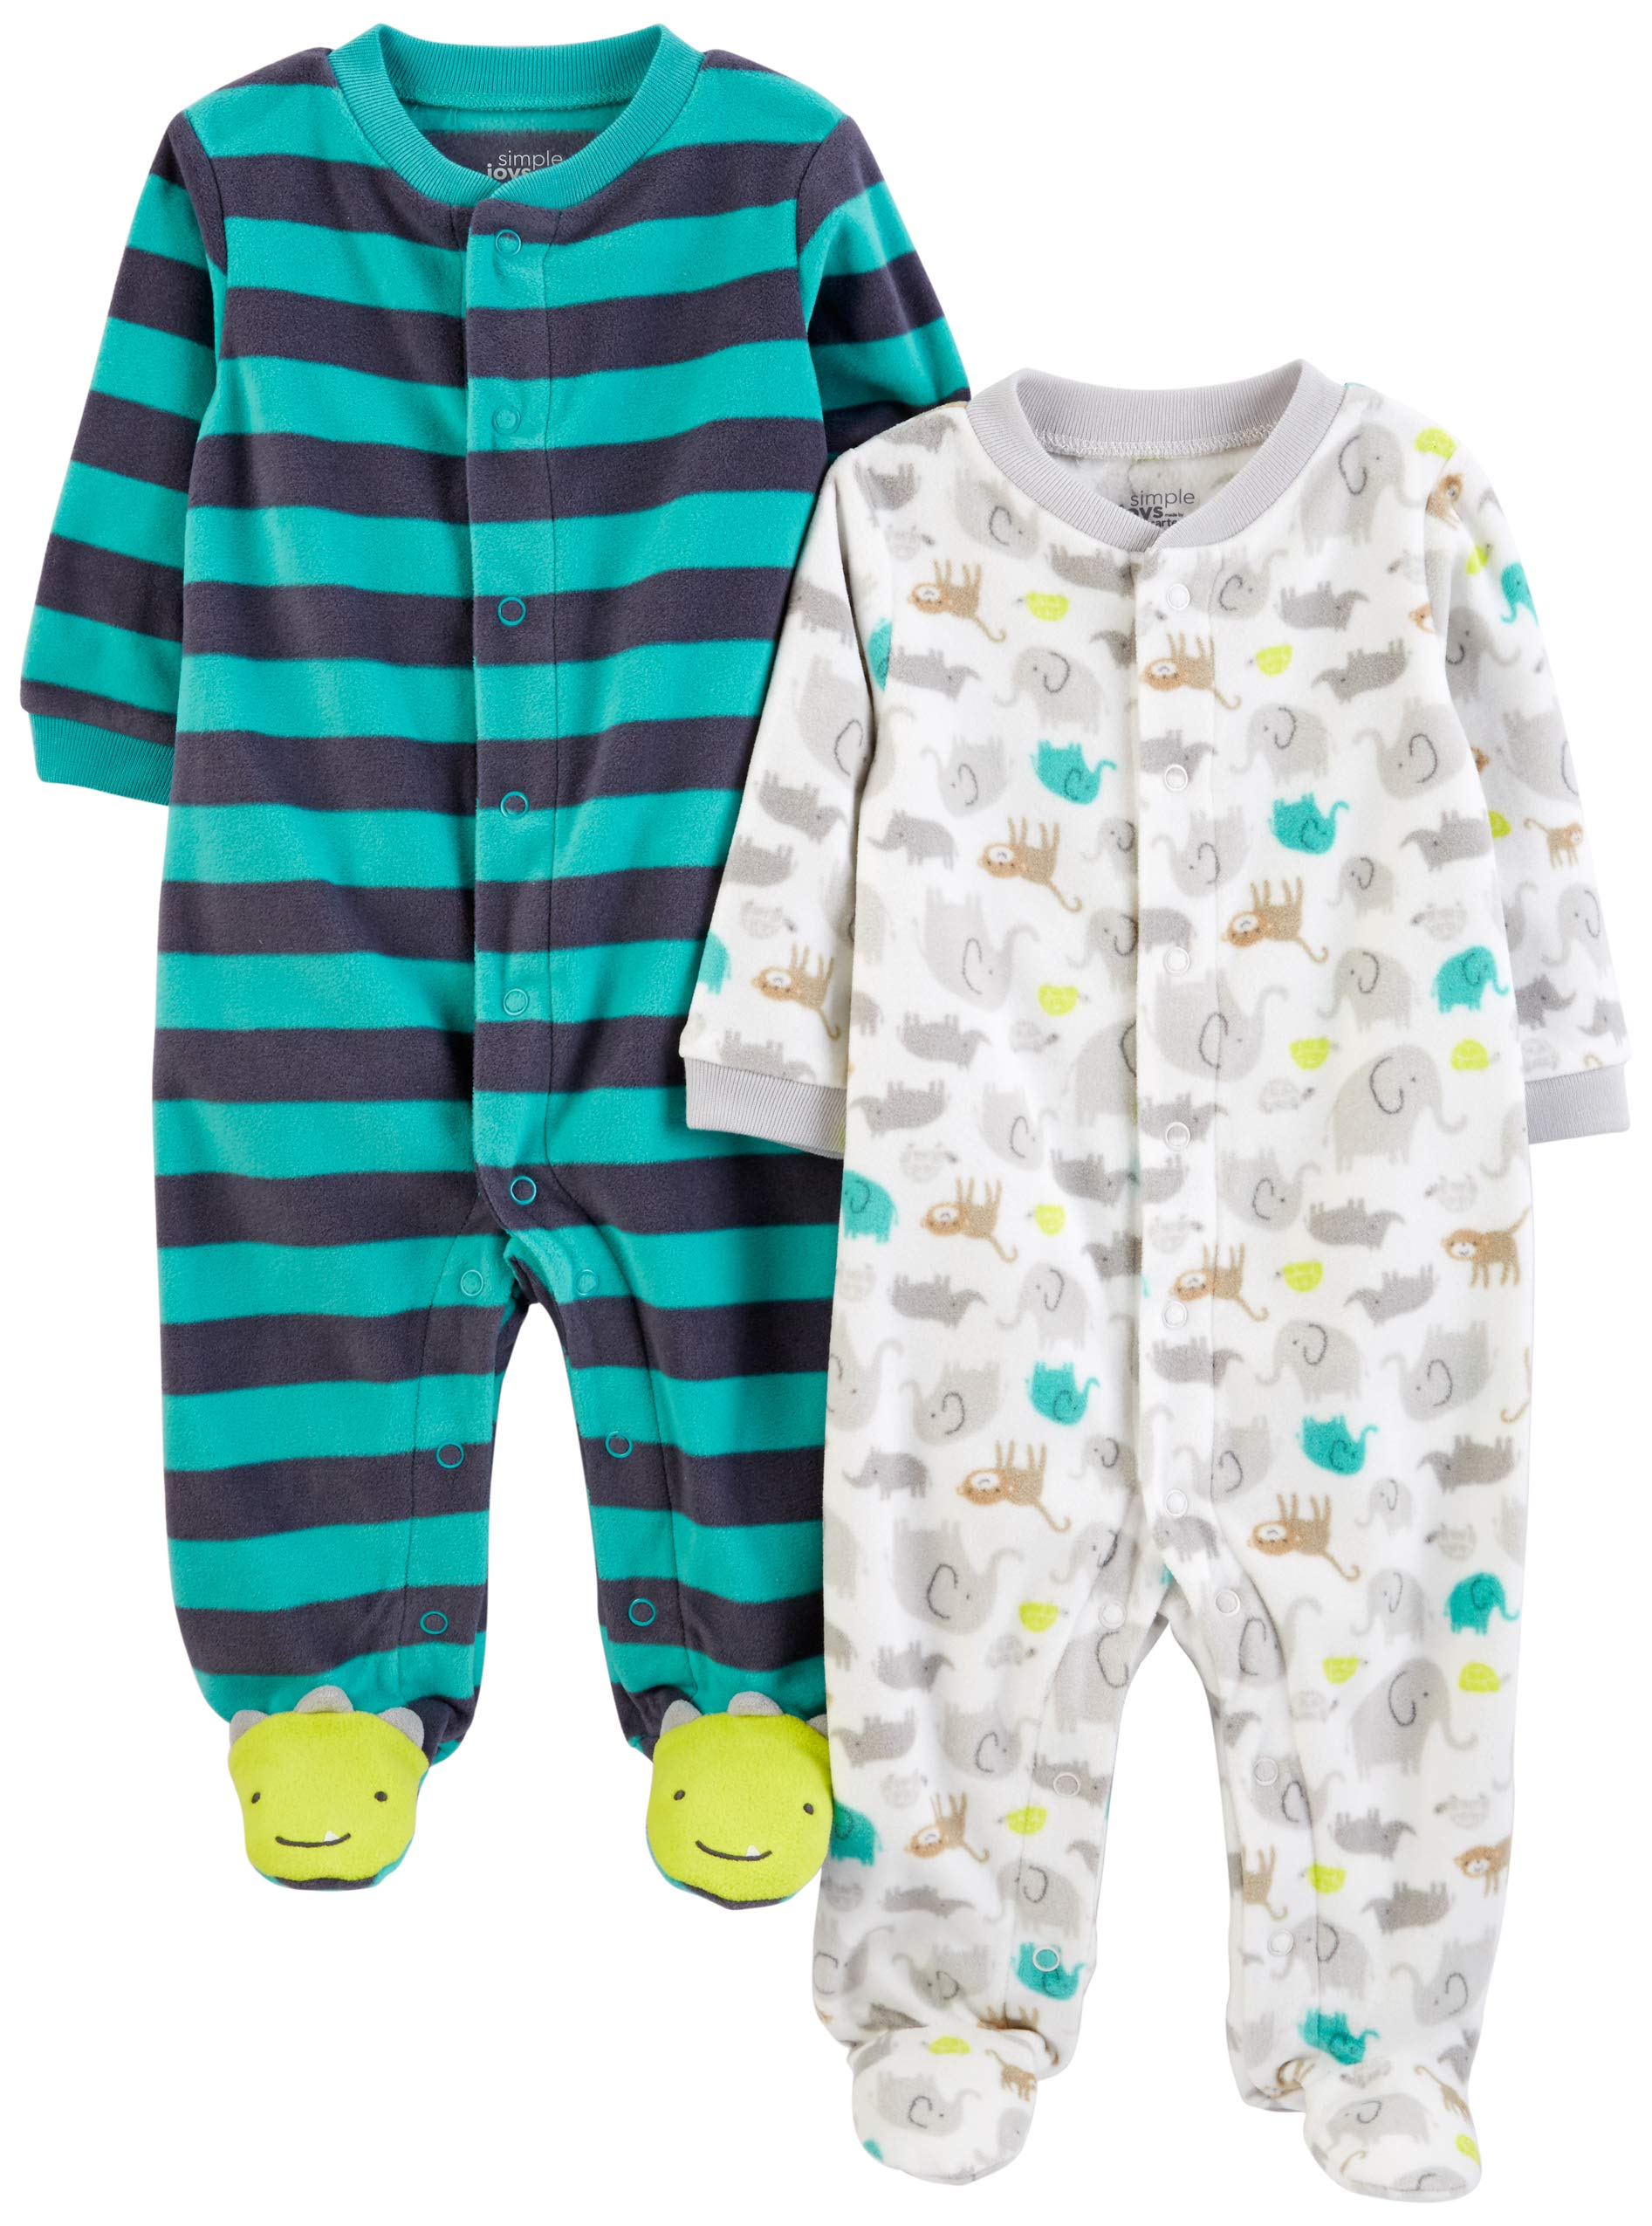 Simple Joys by Carters Baby Boys 2-Pack Fleece Footed Sleep and Play